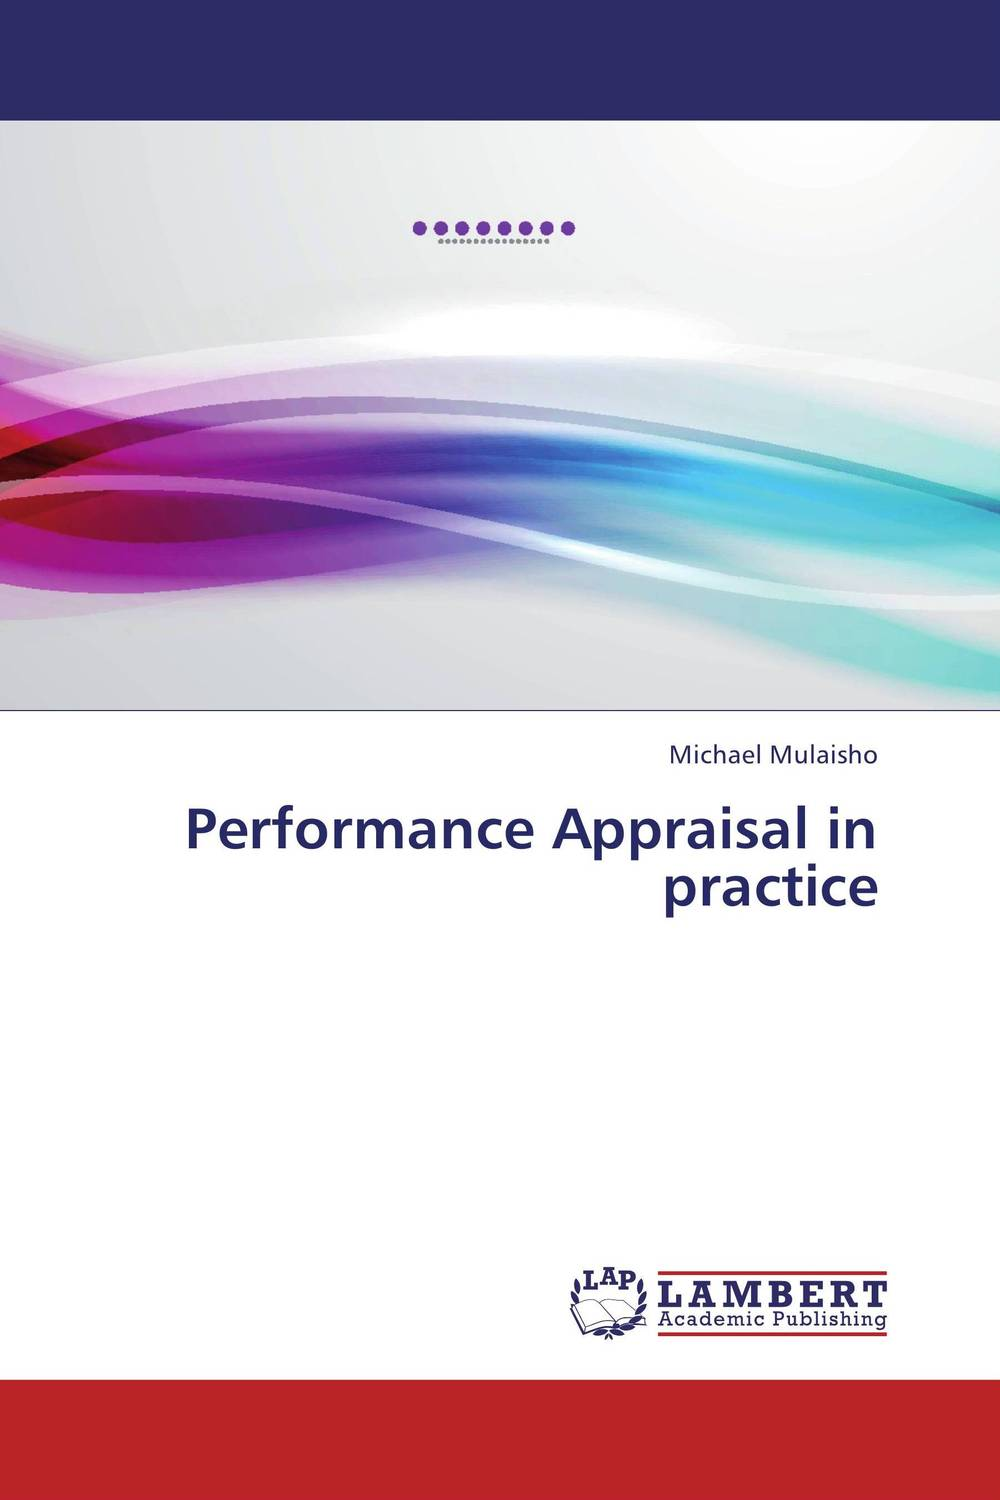 Performance Appraisal in practice performance appraisal system in the macedonian civil service